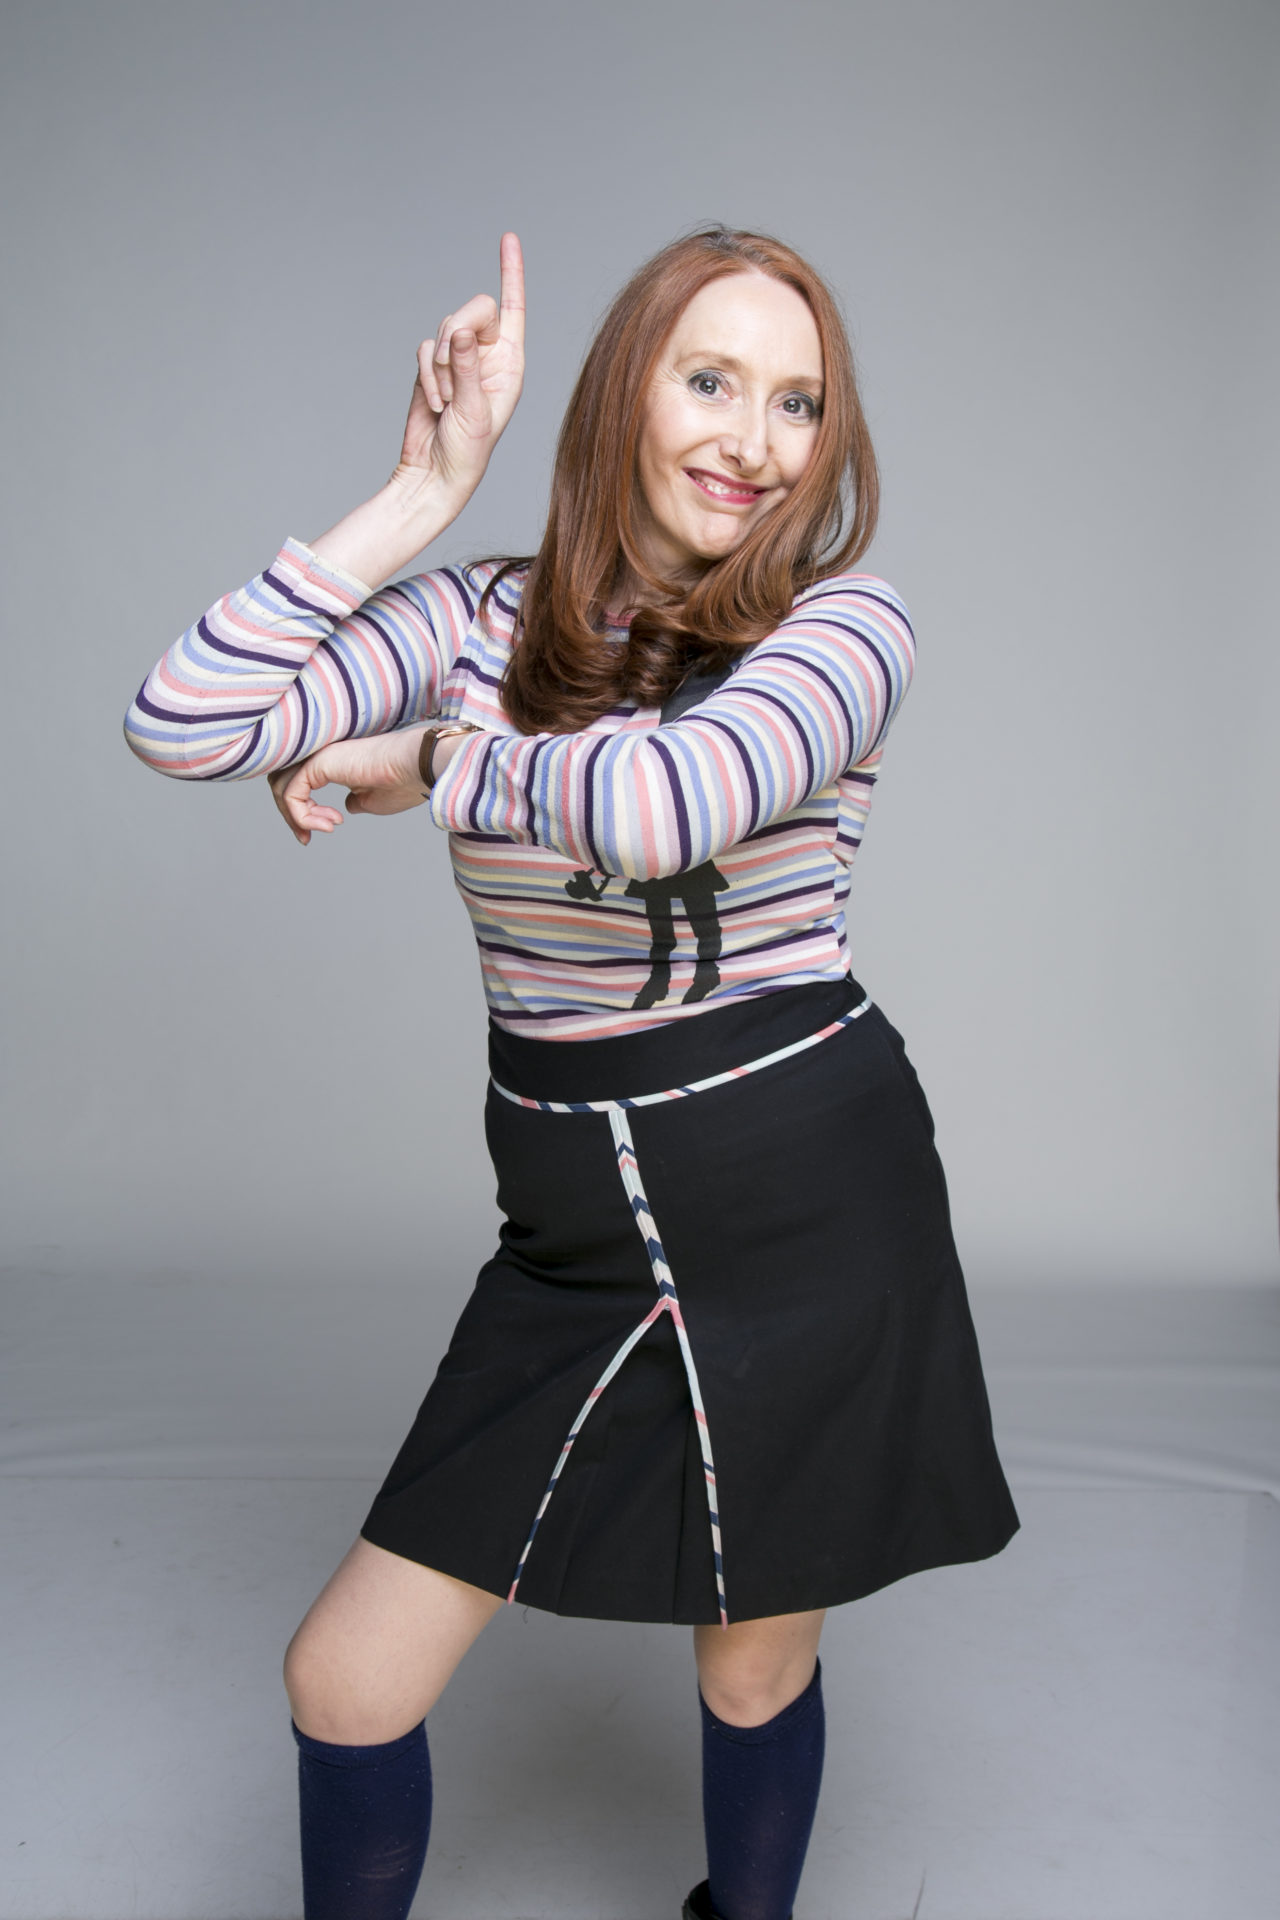 A woman with red hair striking a pose. Wearing a black skirt and a stripy shirt